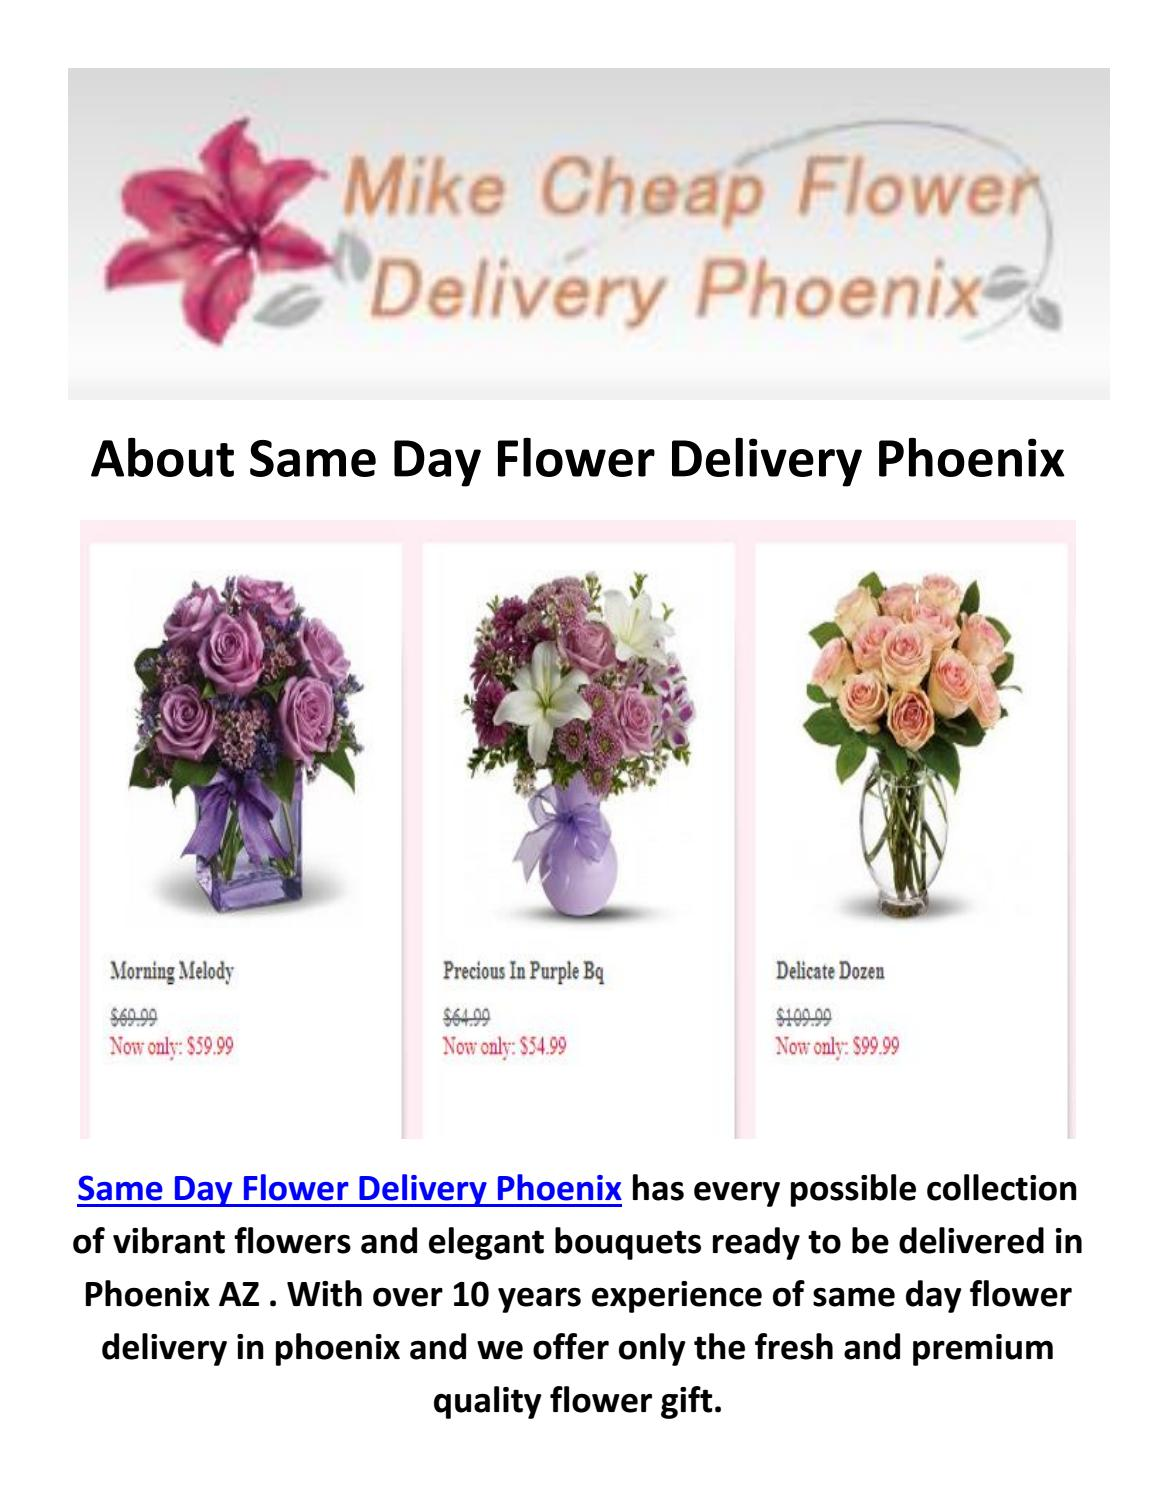 Call 623 377 9585 for same day flower delivery phoenix az by same call 623 377 9585 for same day flower delivery phoenix az by same day flower delivery phoenix issuu izmirmasajfo